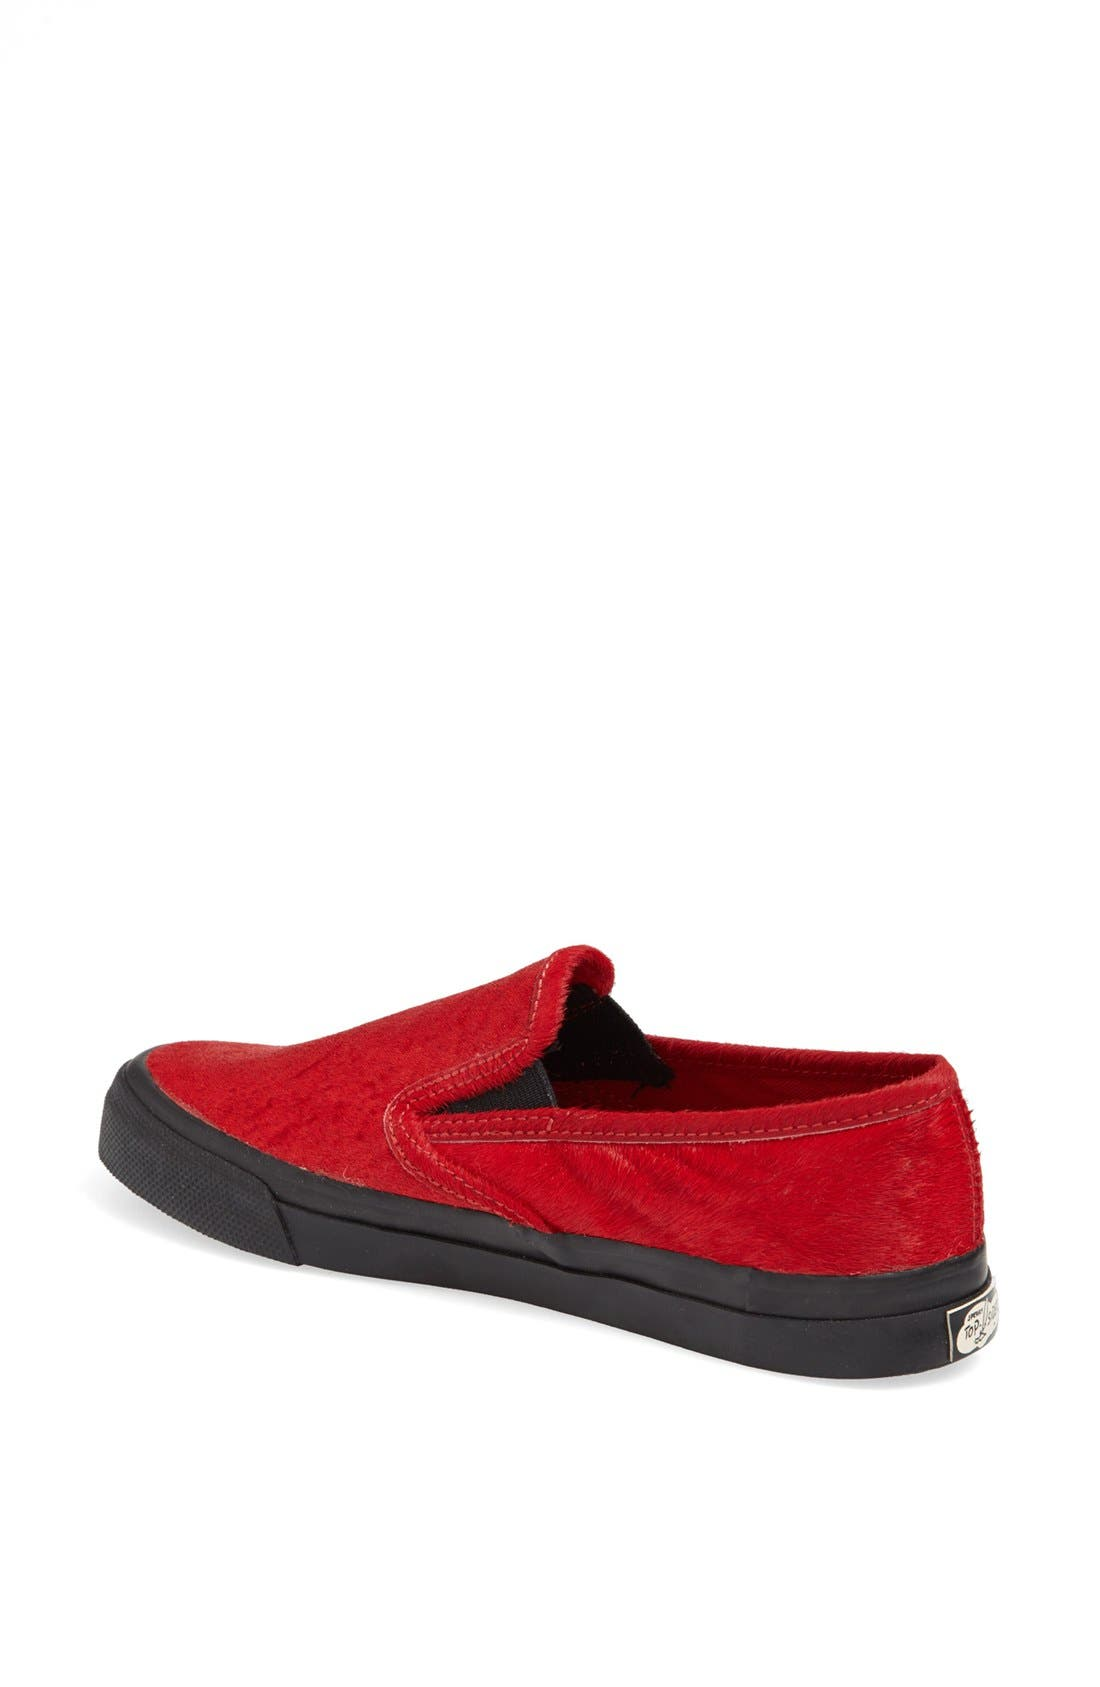 Alternate Image 2  - Sperry for Jeffrey 'CVO' Slip-On